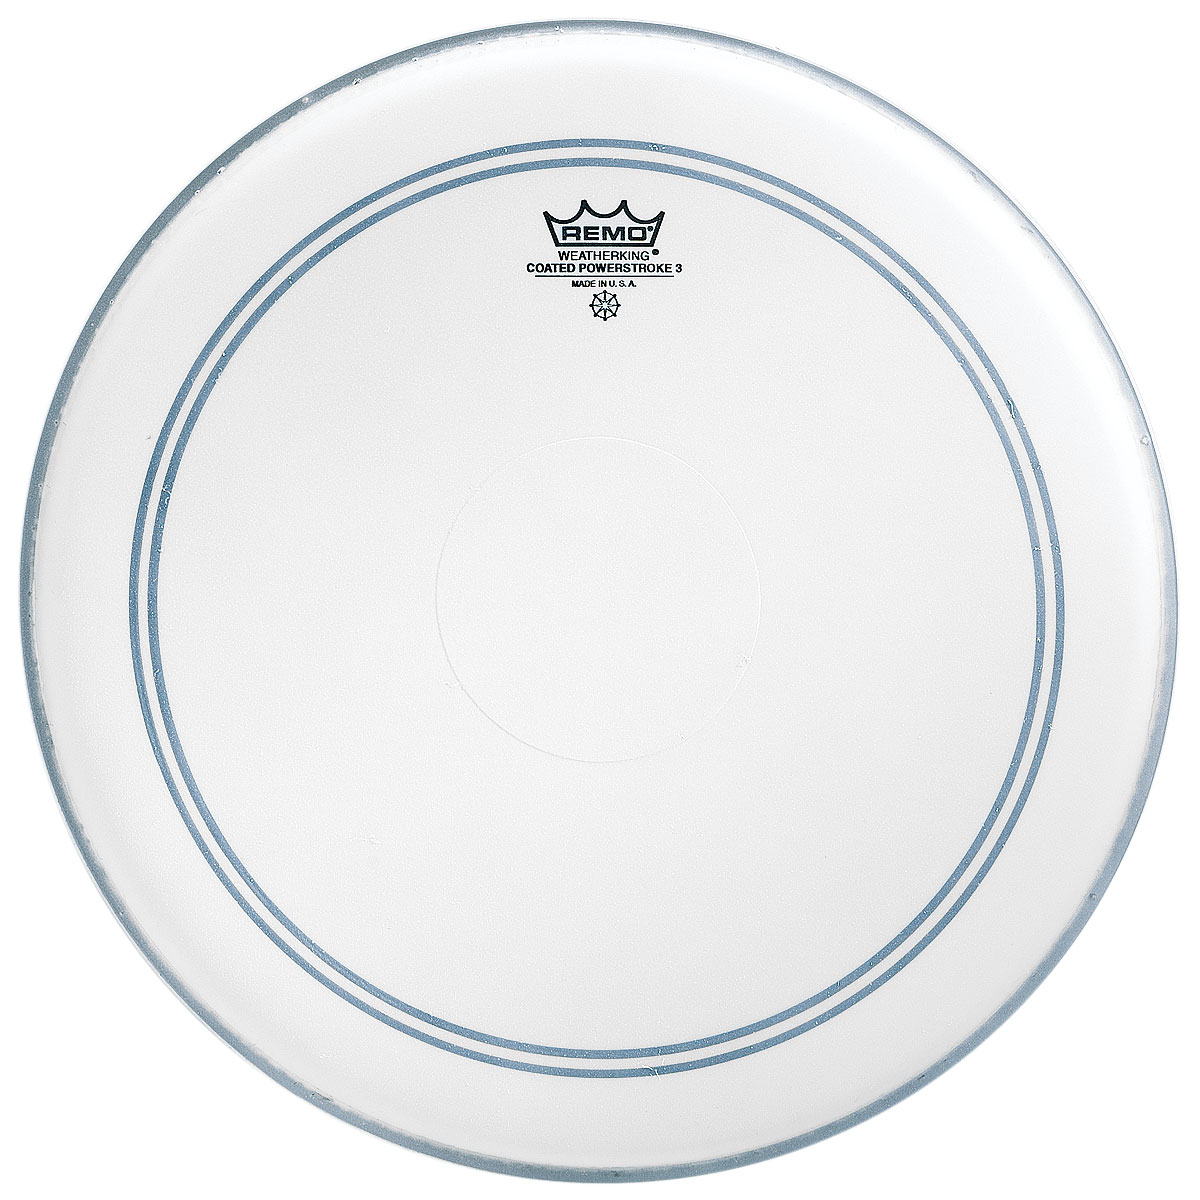 "Remo 14"" Powerstroke P3 Coated Drum Head with Clear Dot"